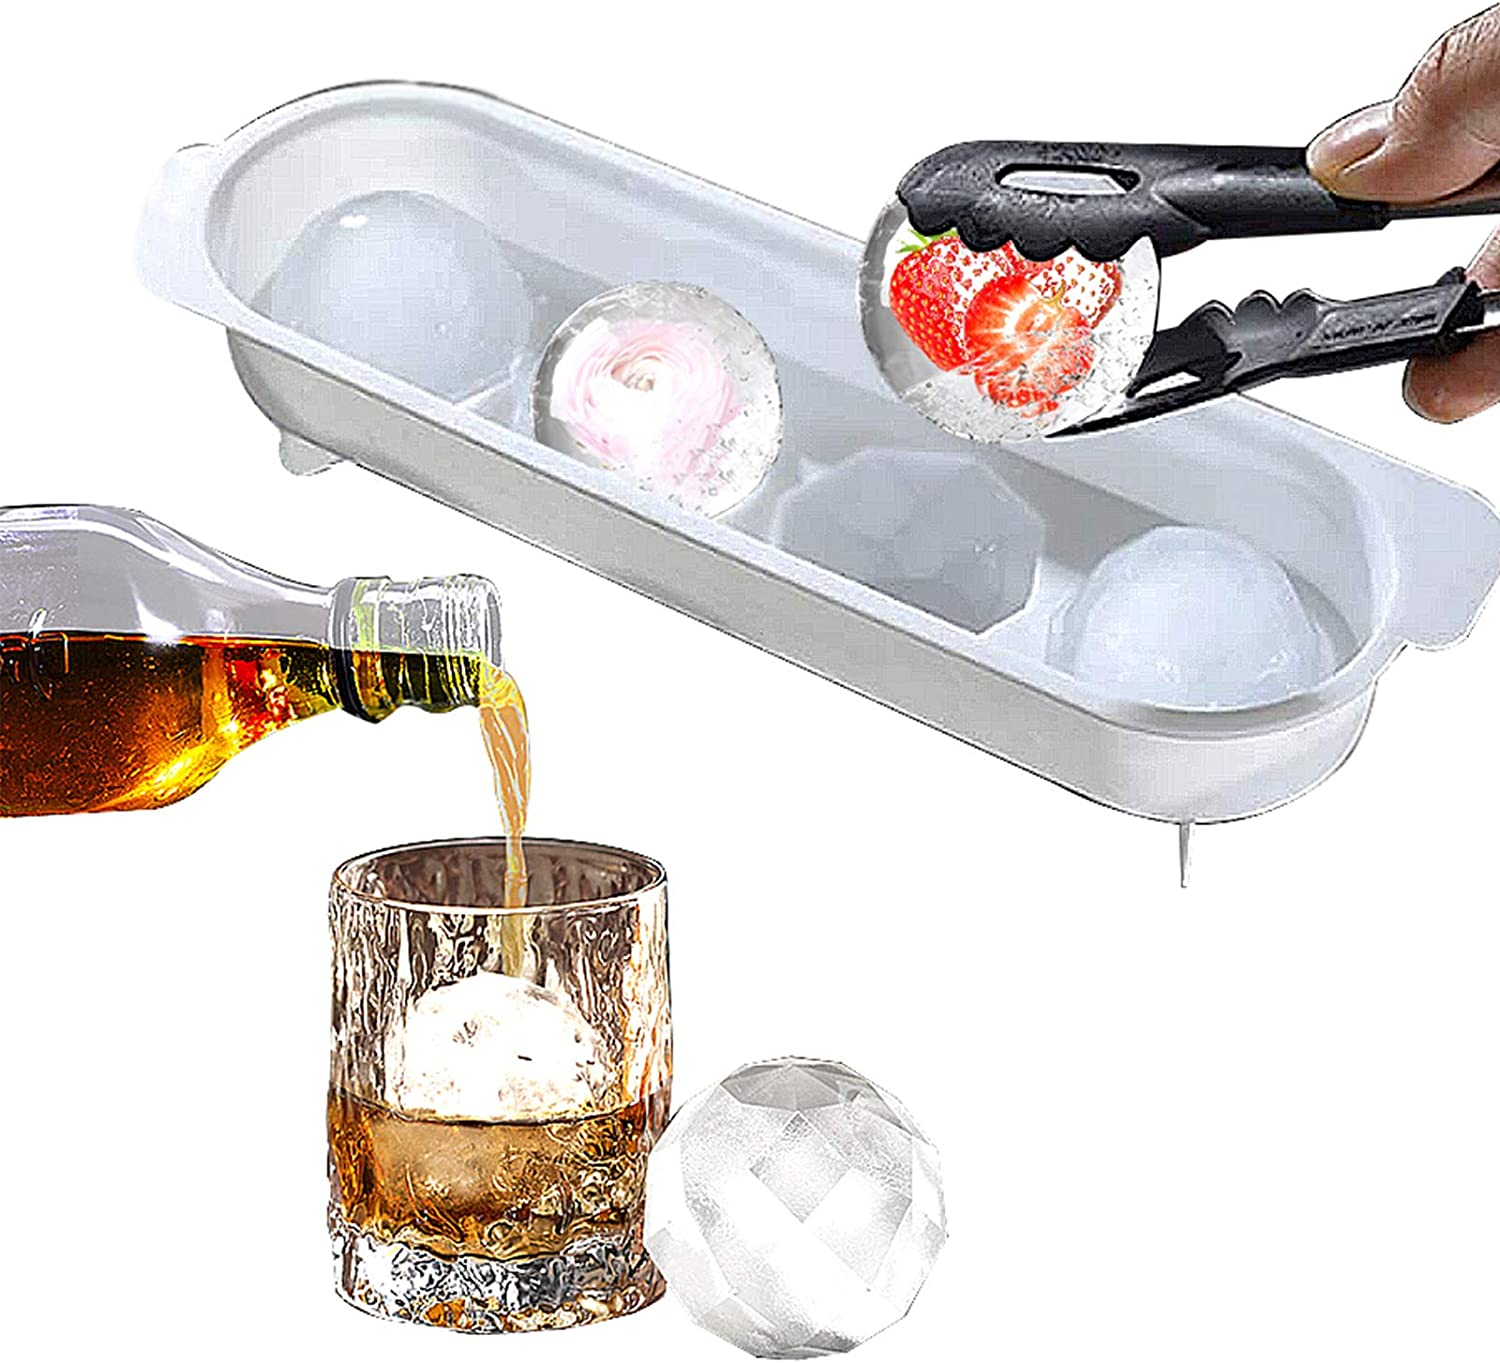 Round Ice Cube Mold, Ice Ball Maker Mold Food-Grade PP Material Non-Toxic, 2 Inches Large Ice Balls, Slow Melting, Creative Design Easy Ice Making, Perfect for Whiskey, Cocktails, Popsicle Making.